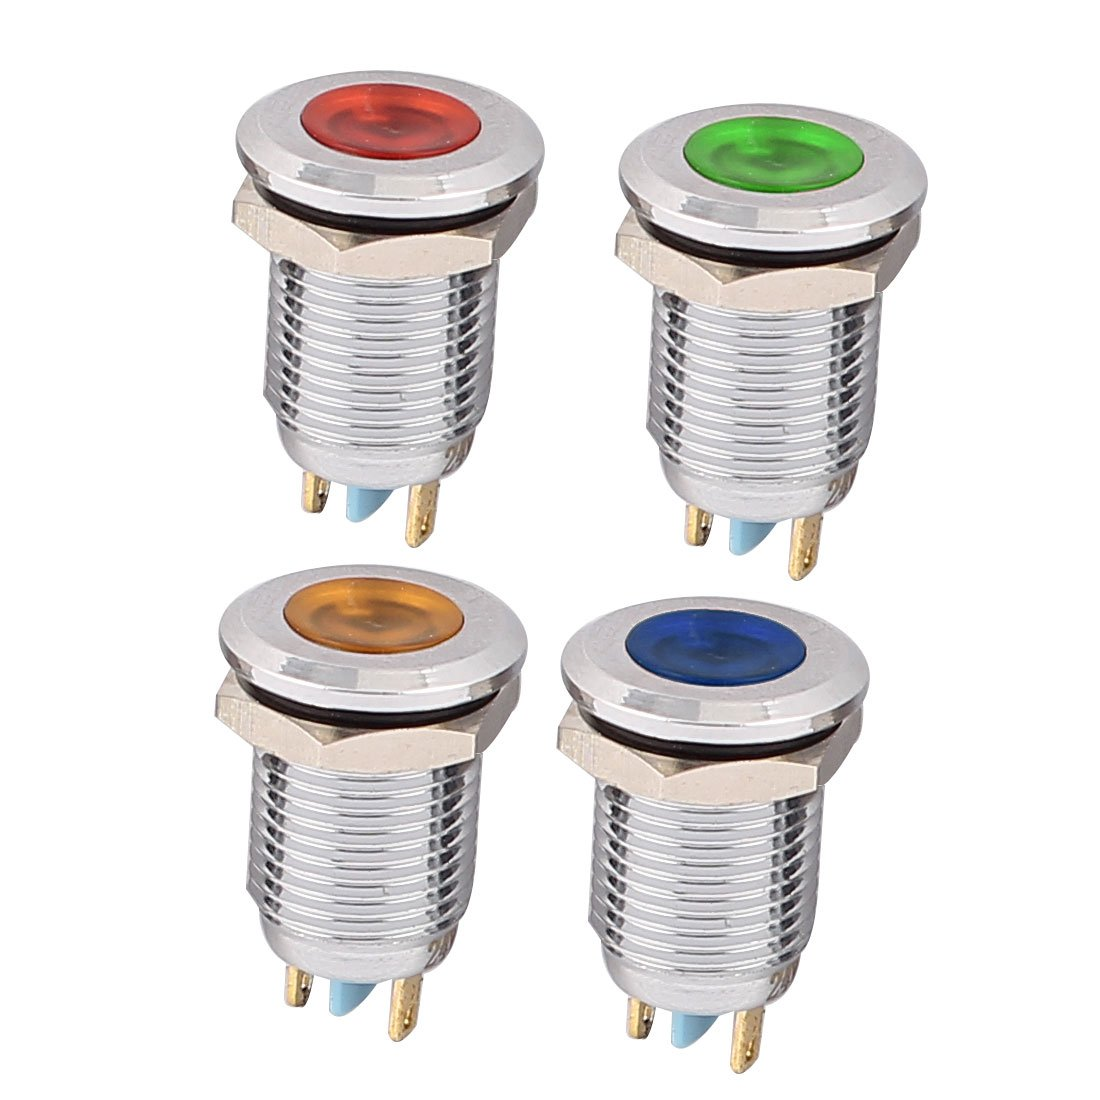 Uxcell 4Pcs 12mm Thread Dia DC 24V Red Green Yellow Blue LED Indicator Light